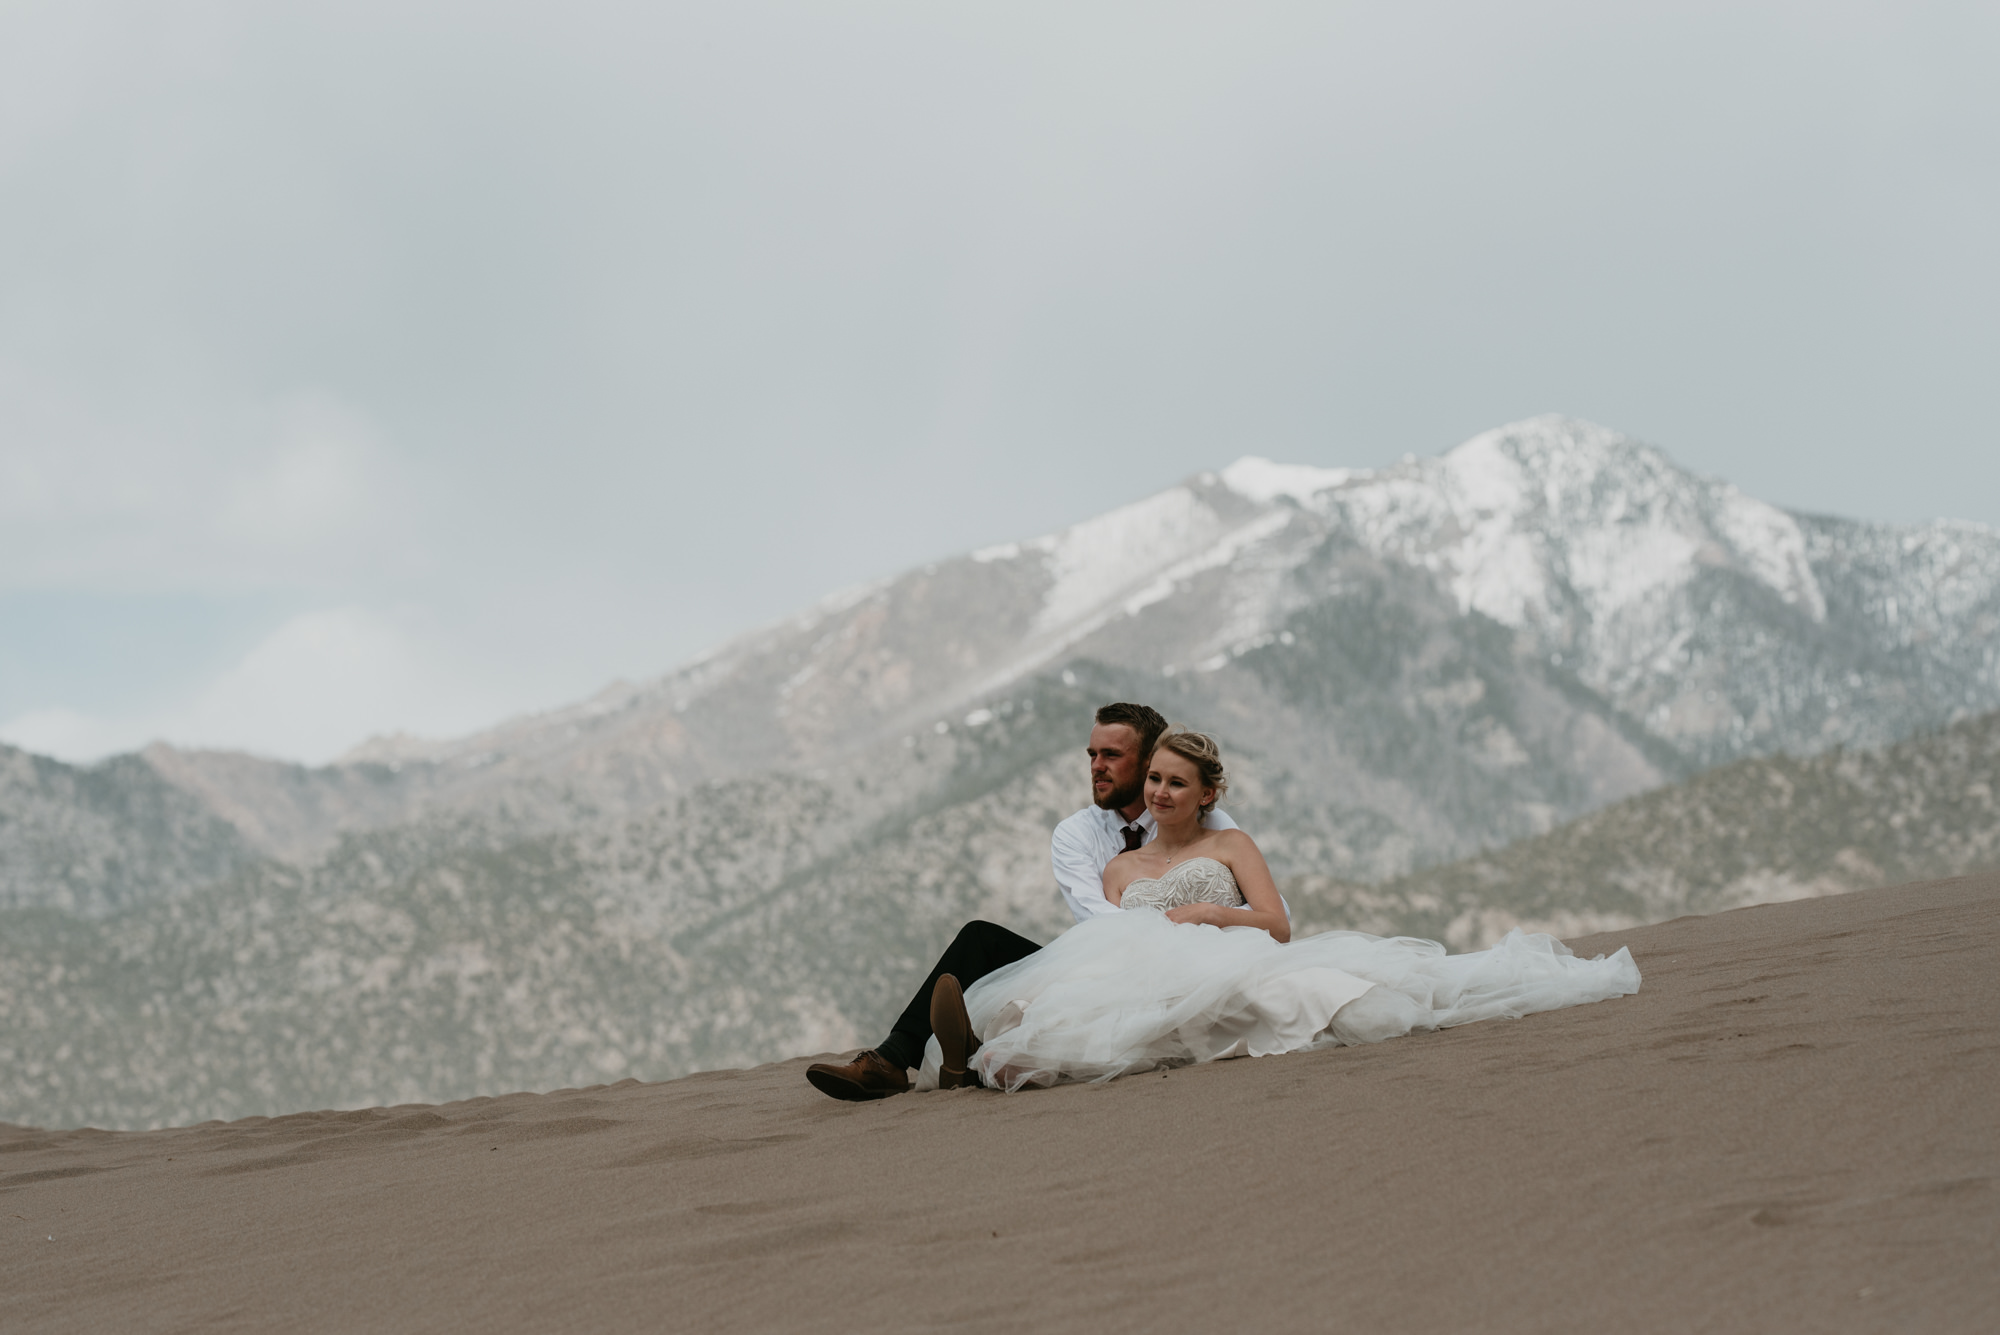 Bride and groom hold each other while sitting on the dunes in front of the Sangre de Cristo mountain range.